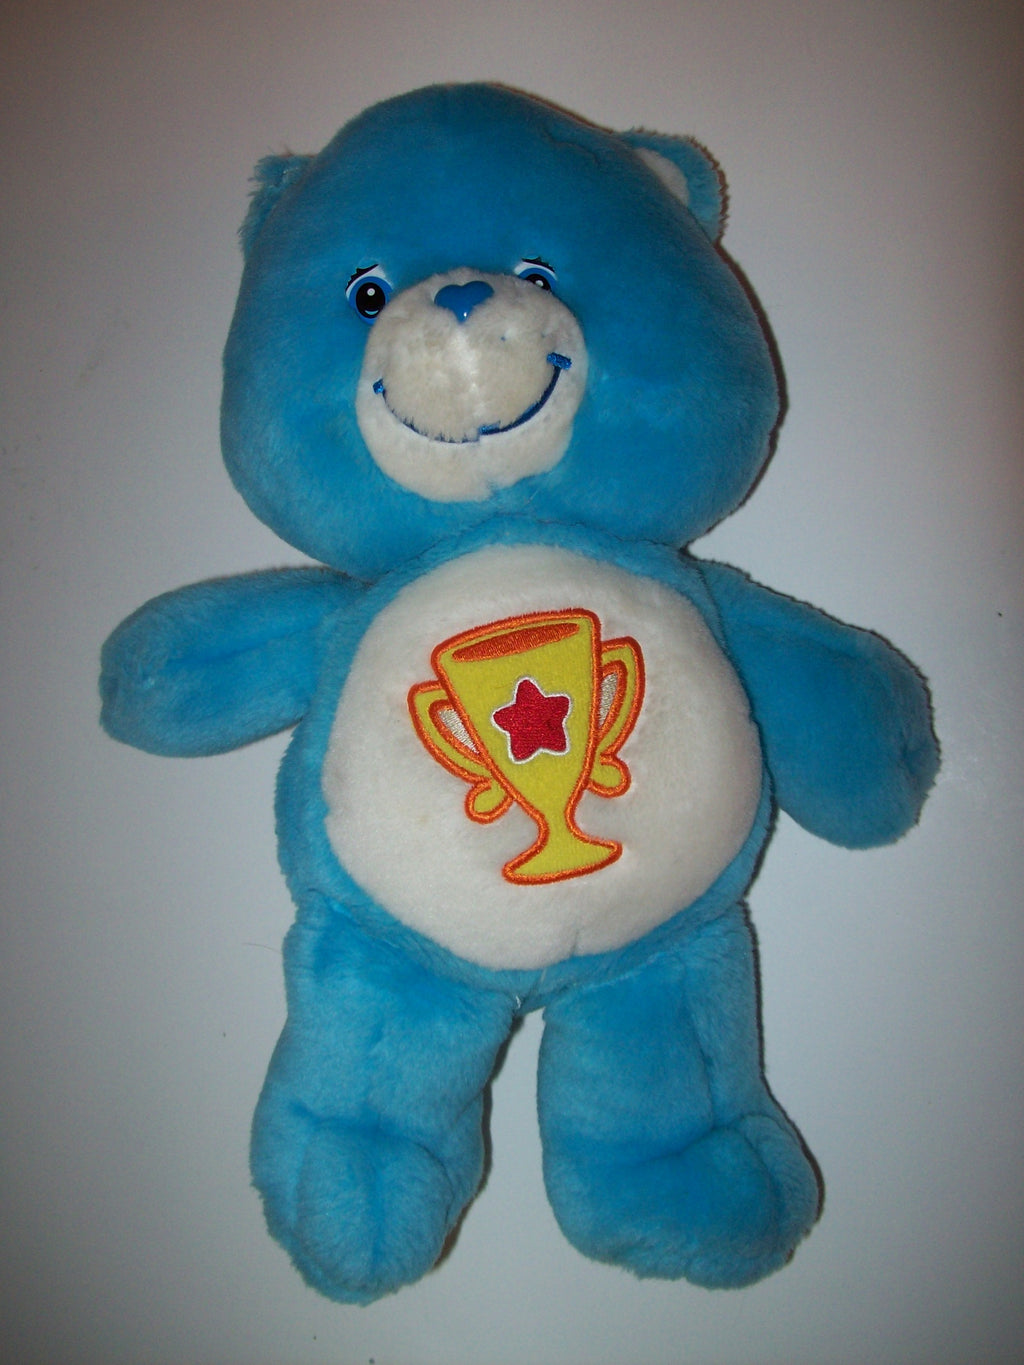 Champ Care Bear - We Got Character